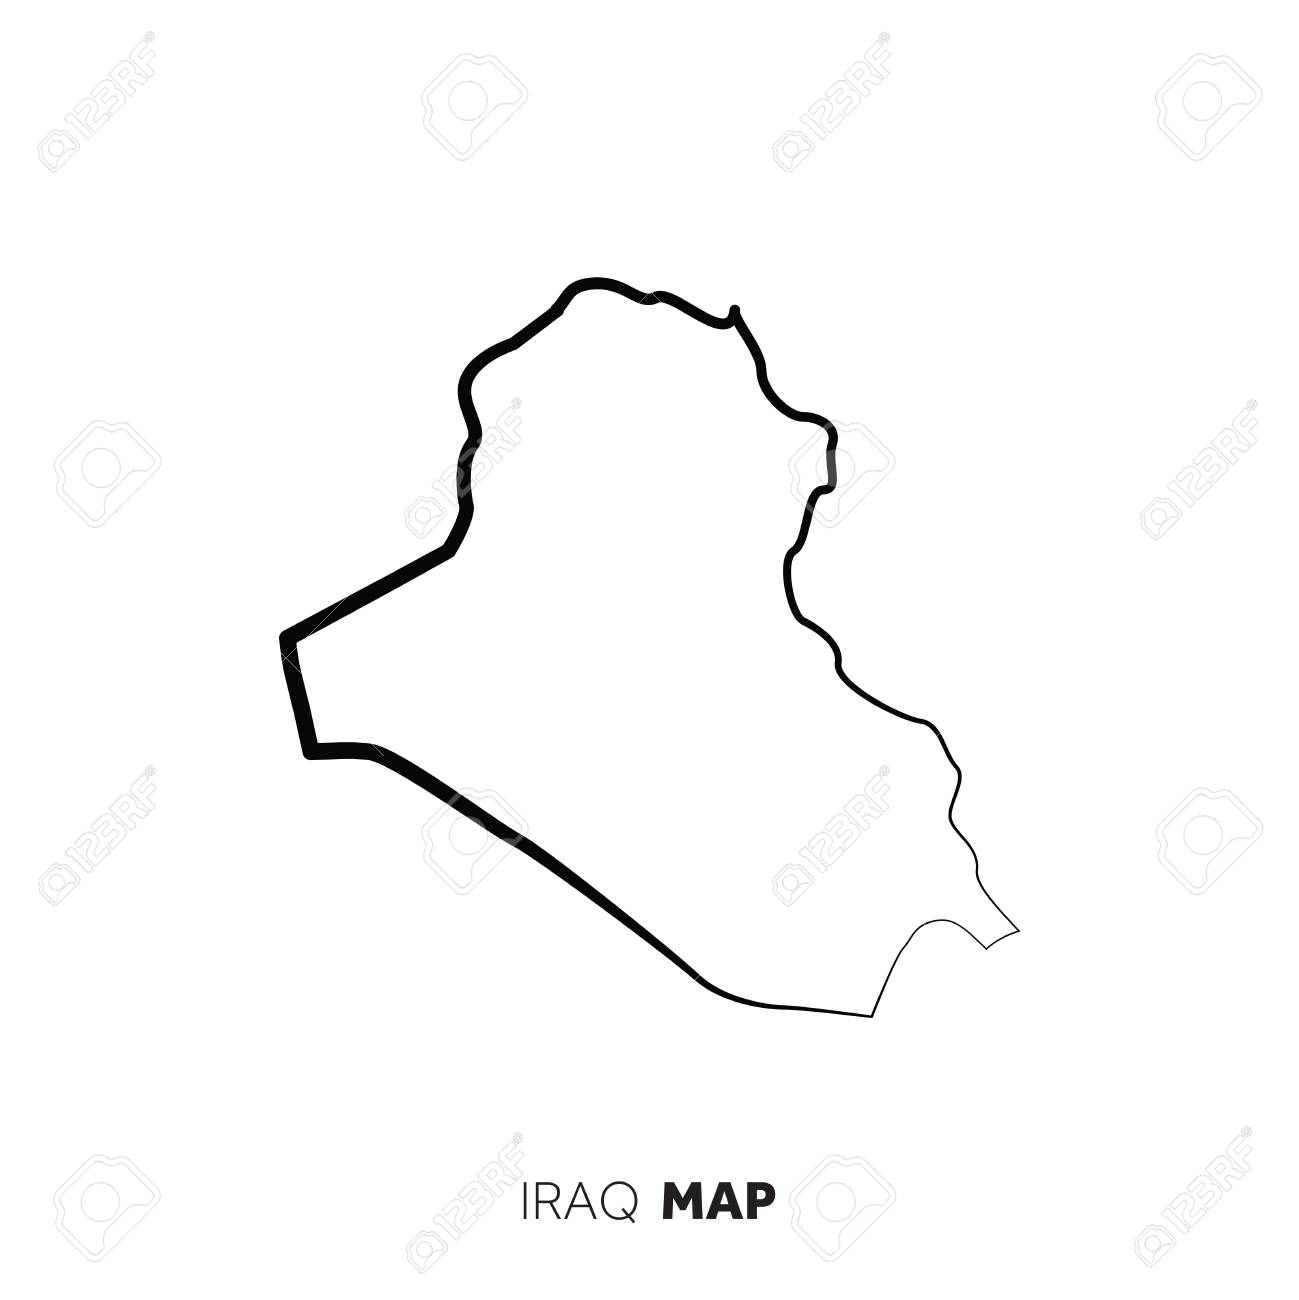 Iraq vector country map outline  Black line on white background